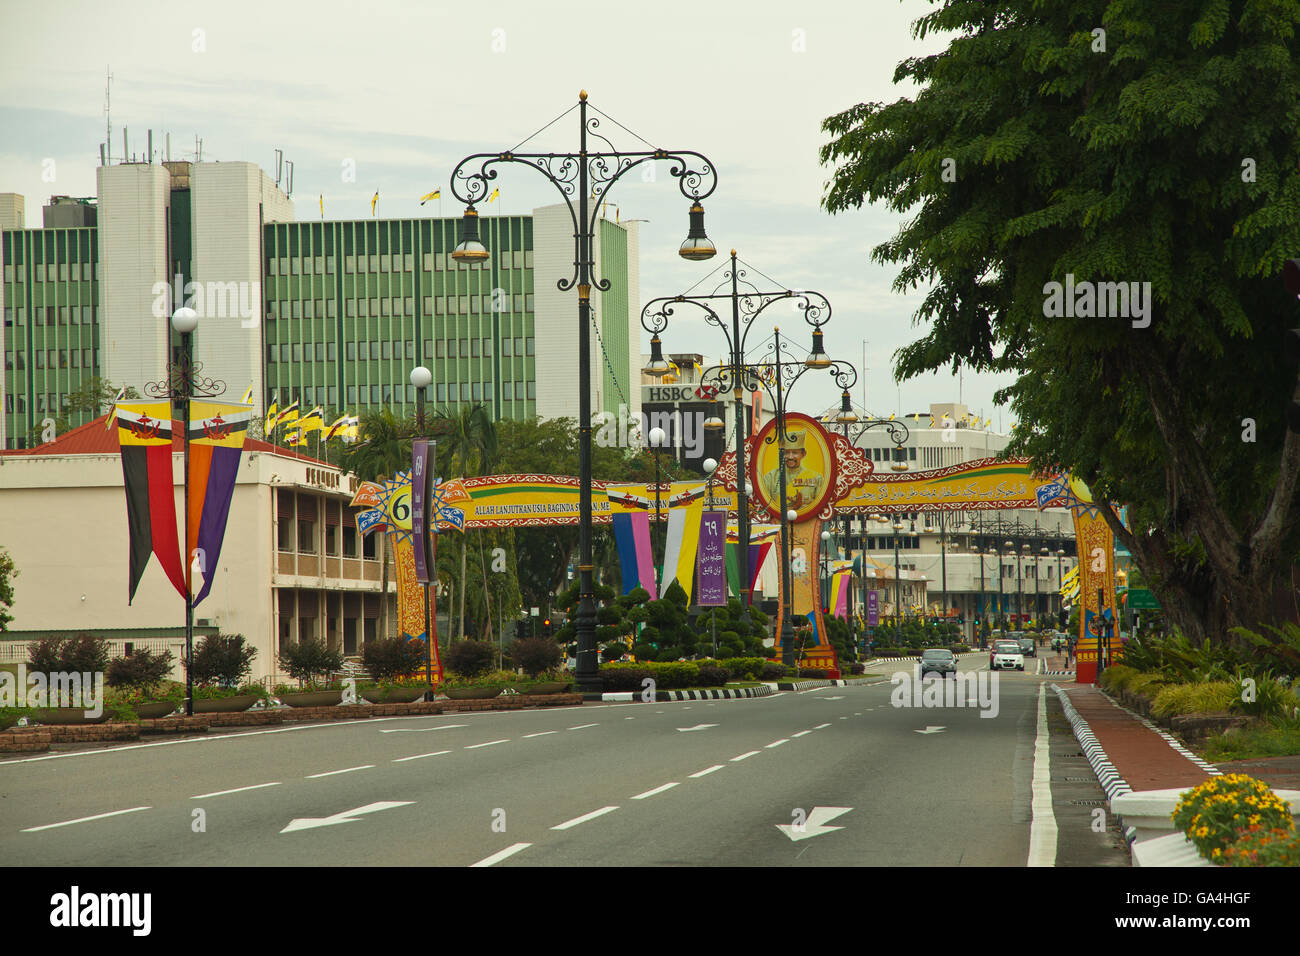 Innercity of Bandar Seri Begawan, Brunei - Stock Image